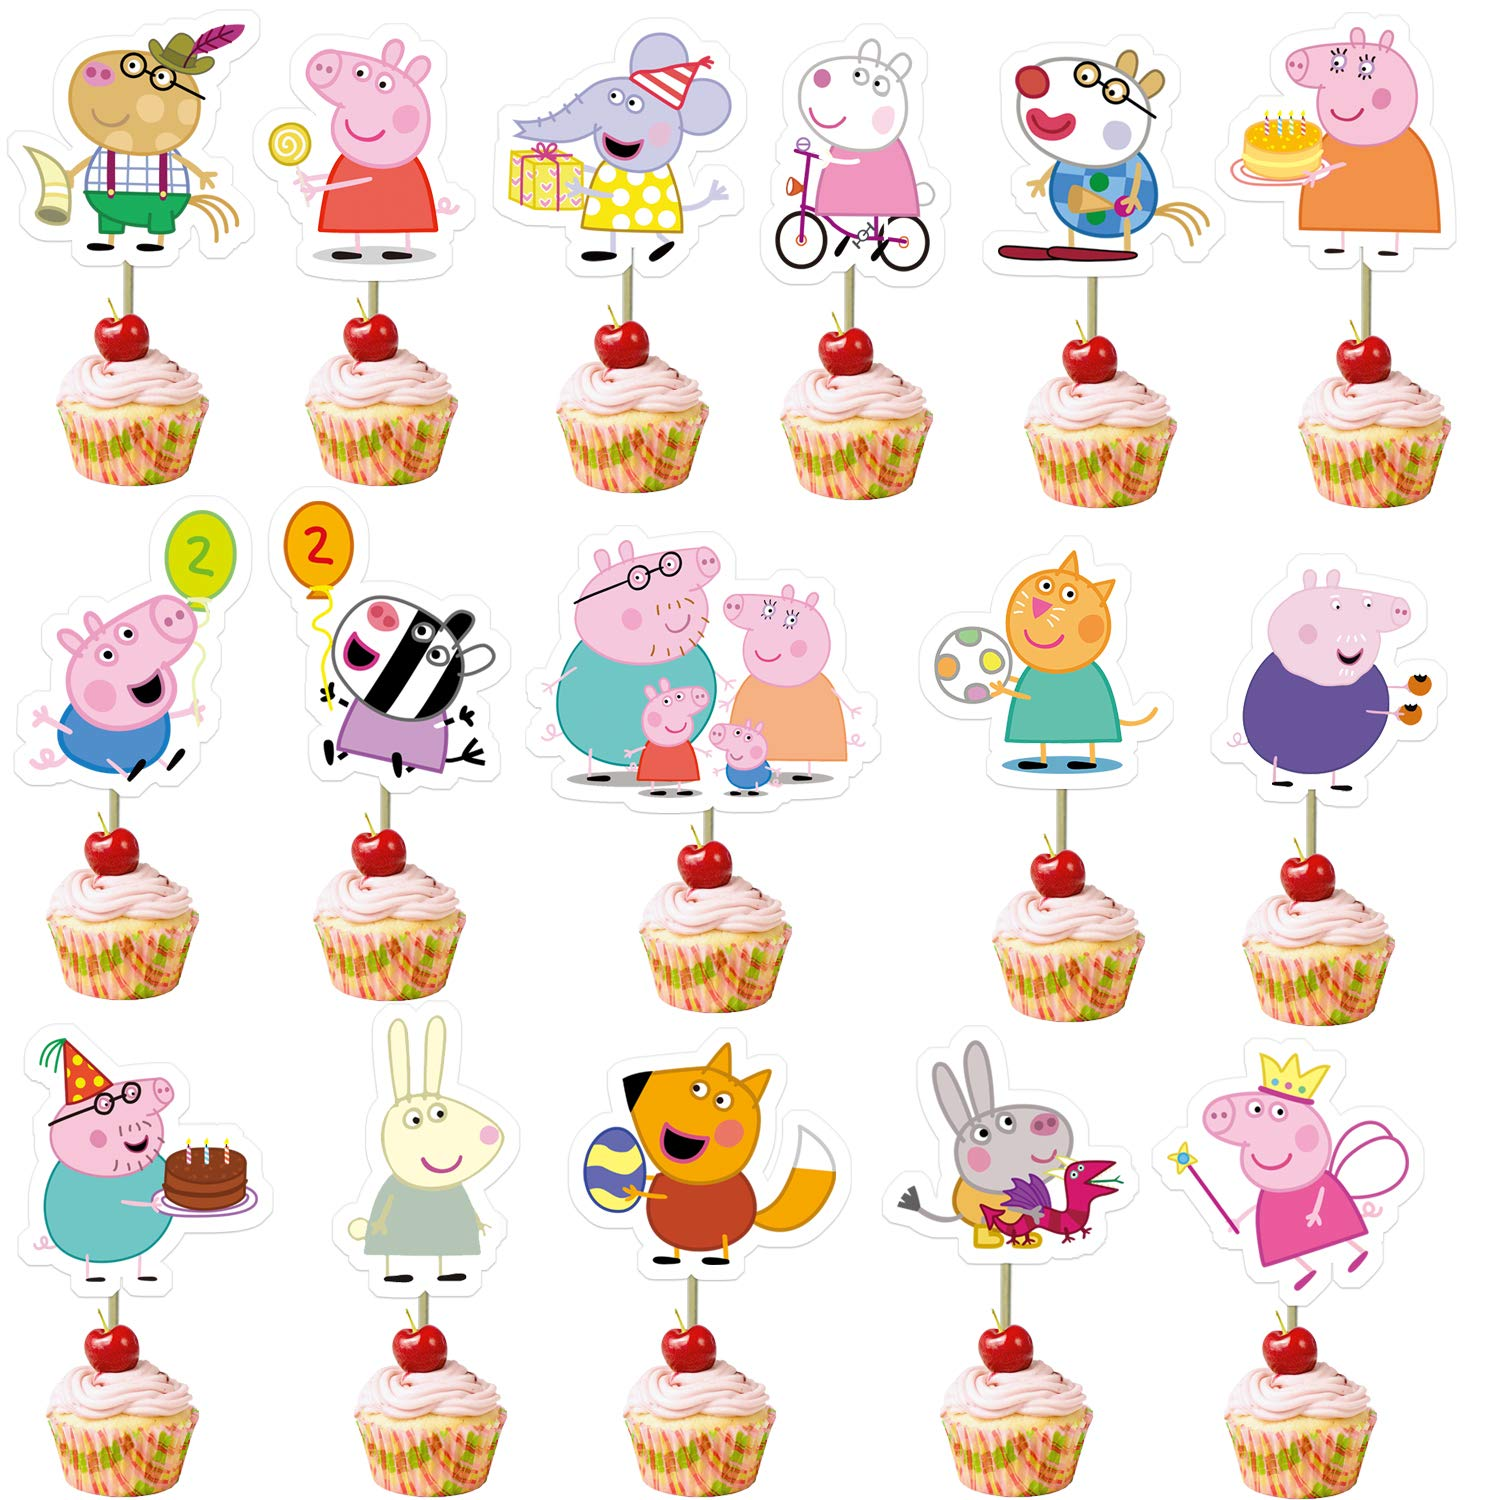 32Pcs Cute Pigs Cupcake Toppers for Baby Shower and Happy Birthday Cupcake Decor,16 Styles